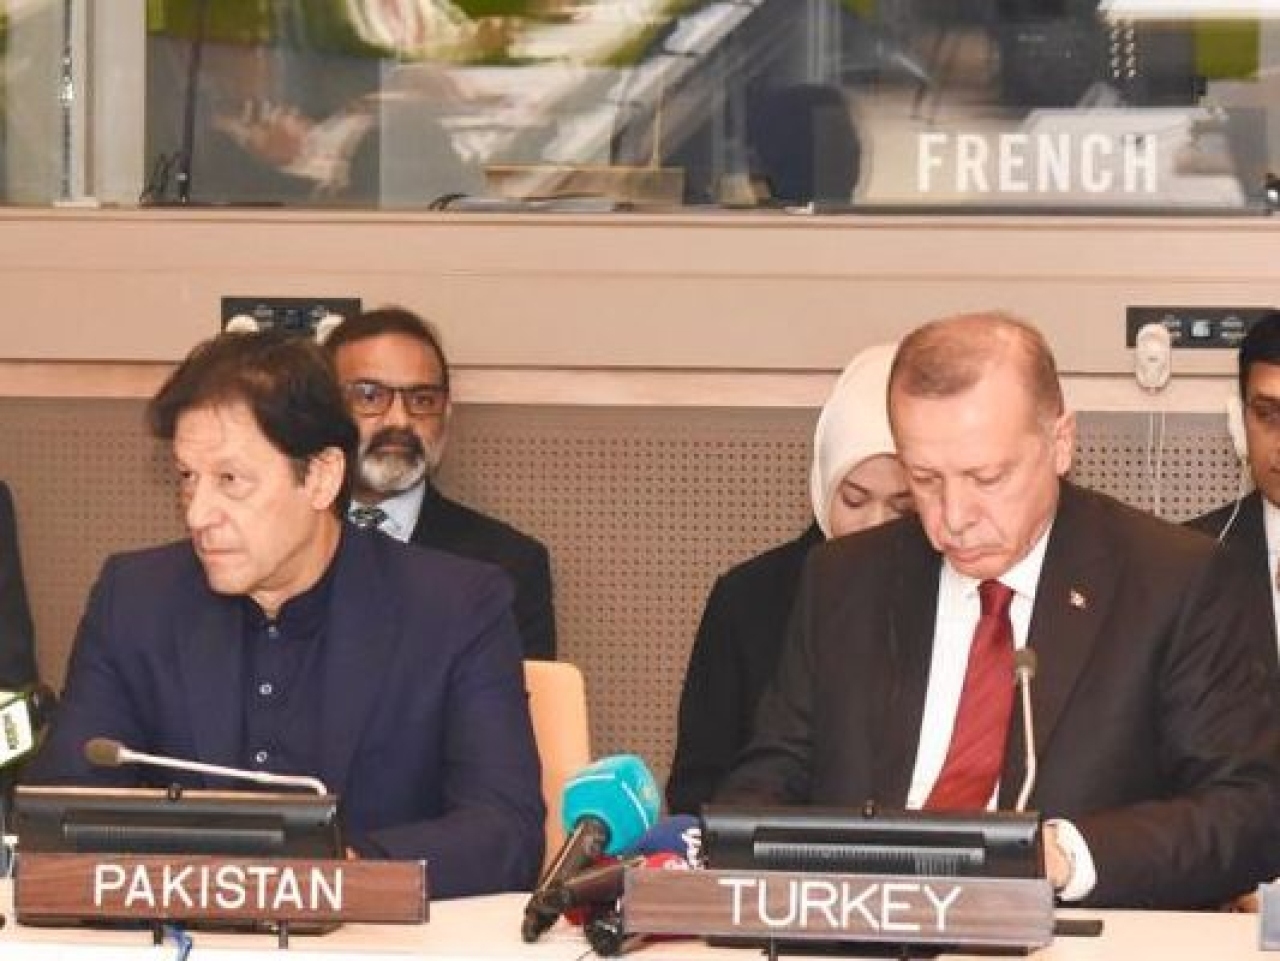 Erdoğan's Pro-Pakistan Speech  On Kashmir To Cost Turkey Billions? Indian Navy Contract May Be Shelved: Report